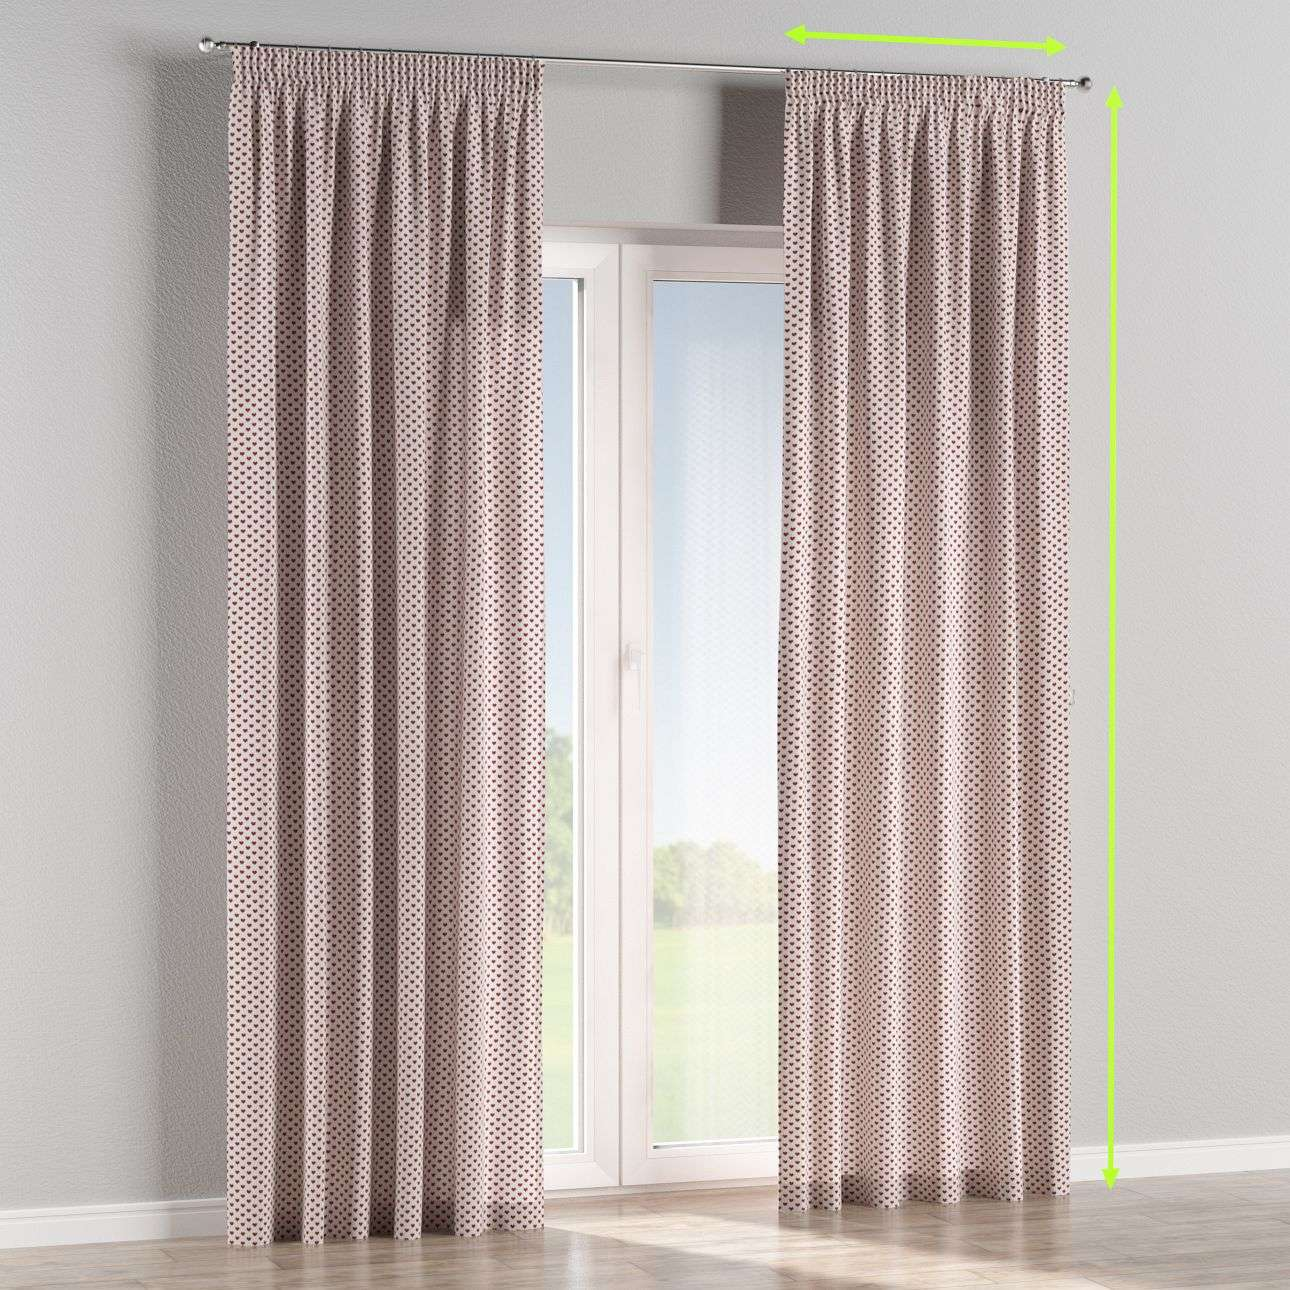 Pencil pleat curtains in collection Christmas, fabric: 630-04